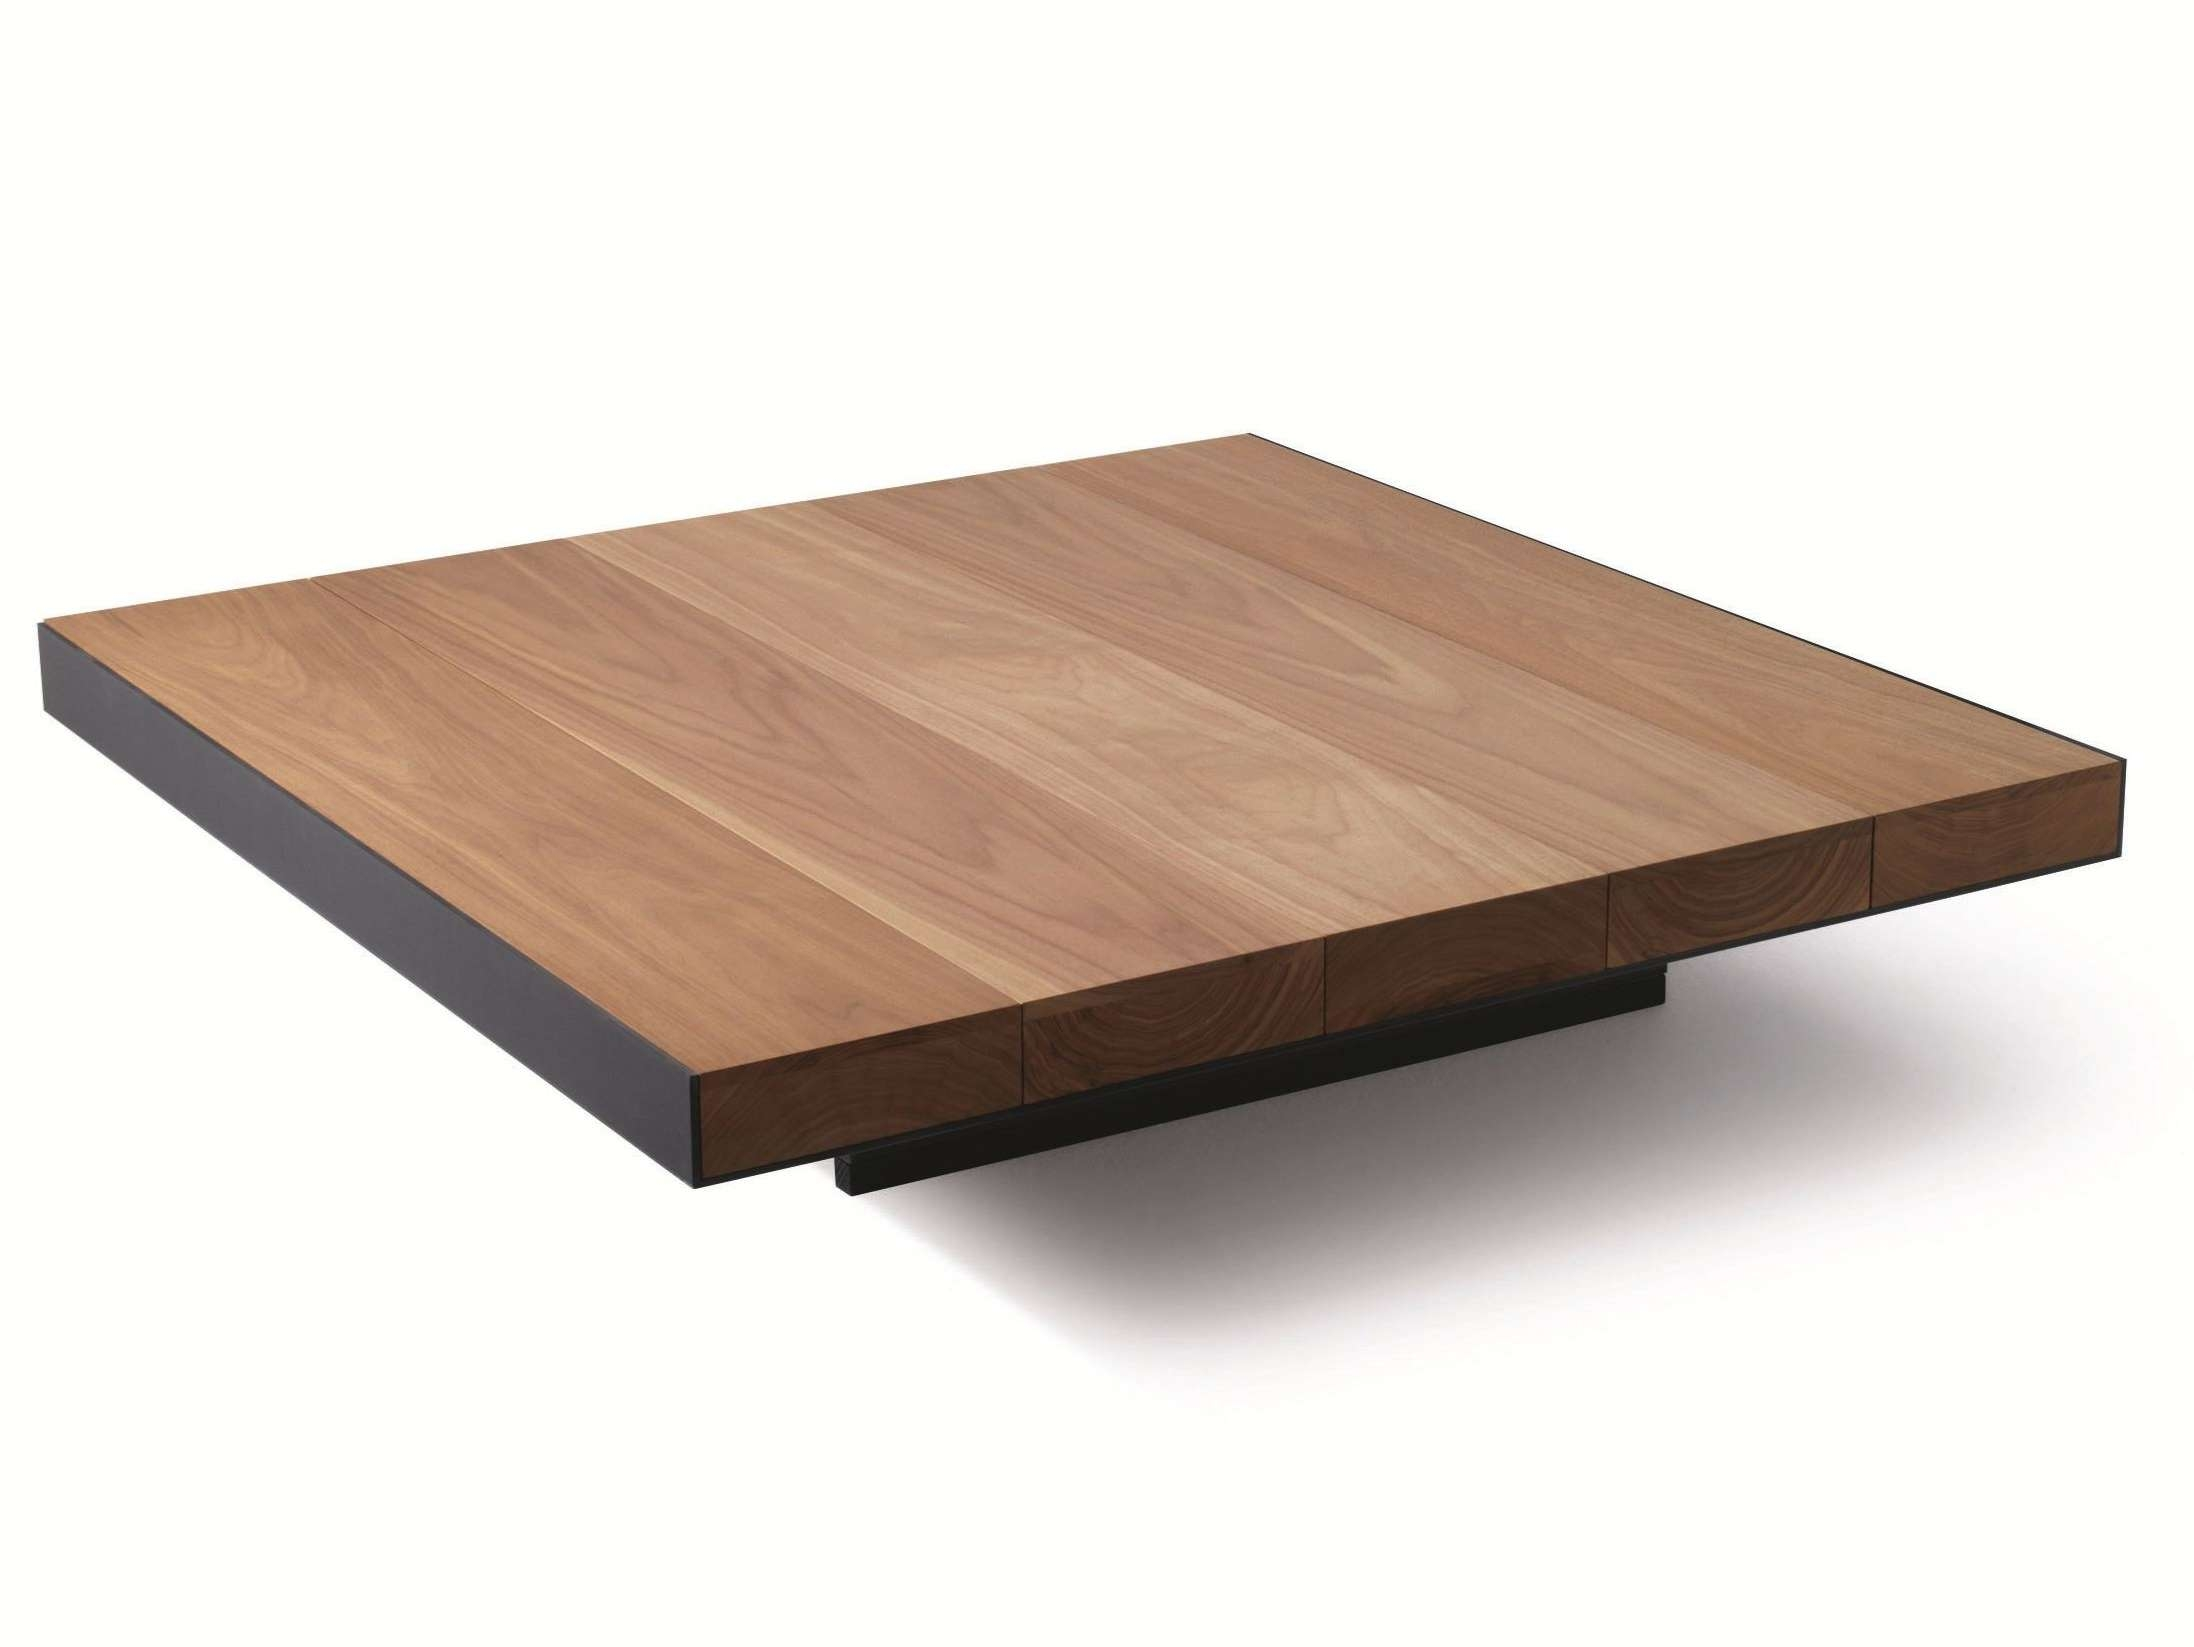 Famous Low Coffee Tables Intended For Coffee Tables : Small Low Coffee Table Design Ideas Oak Round Side (View 5 of 20)